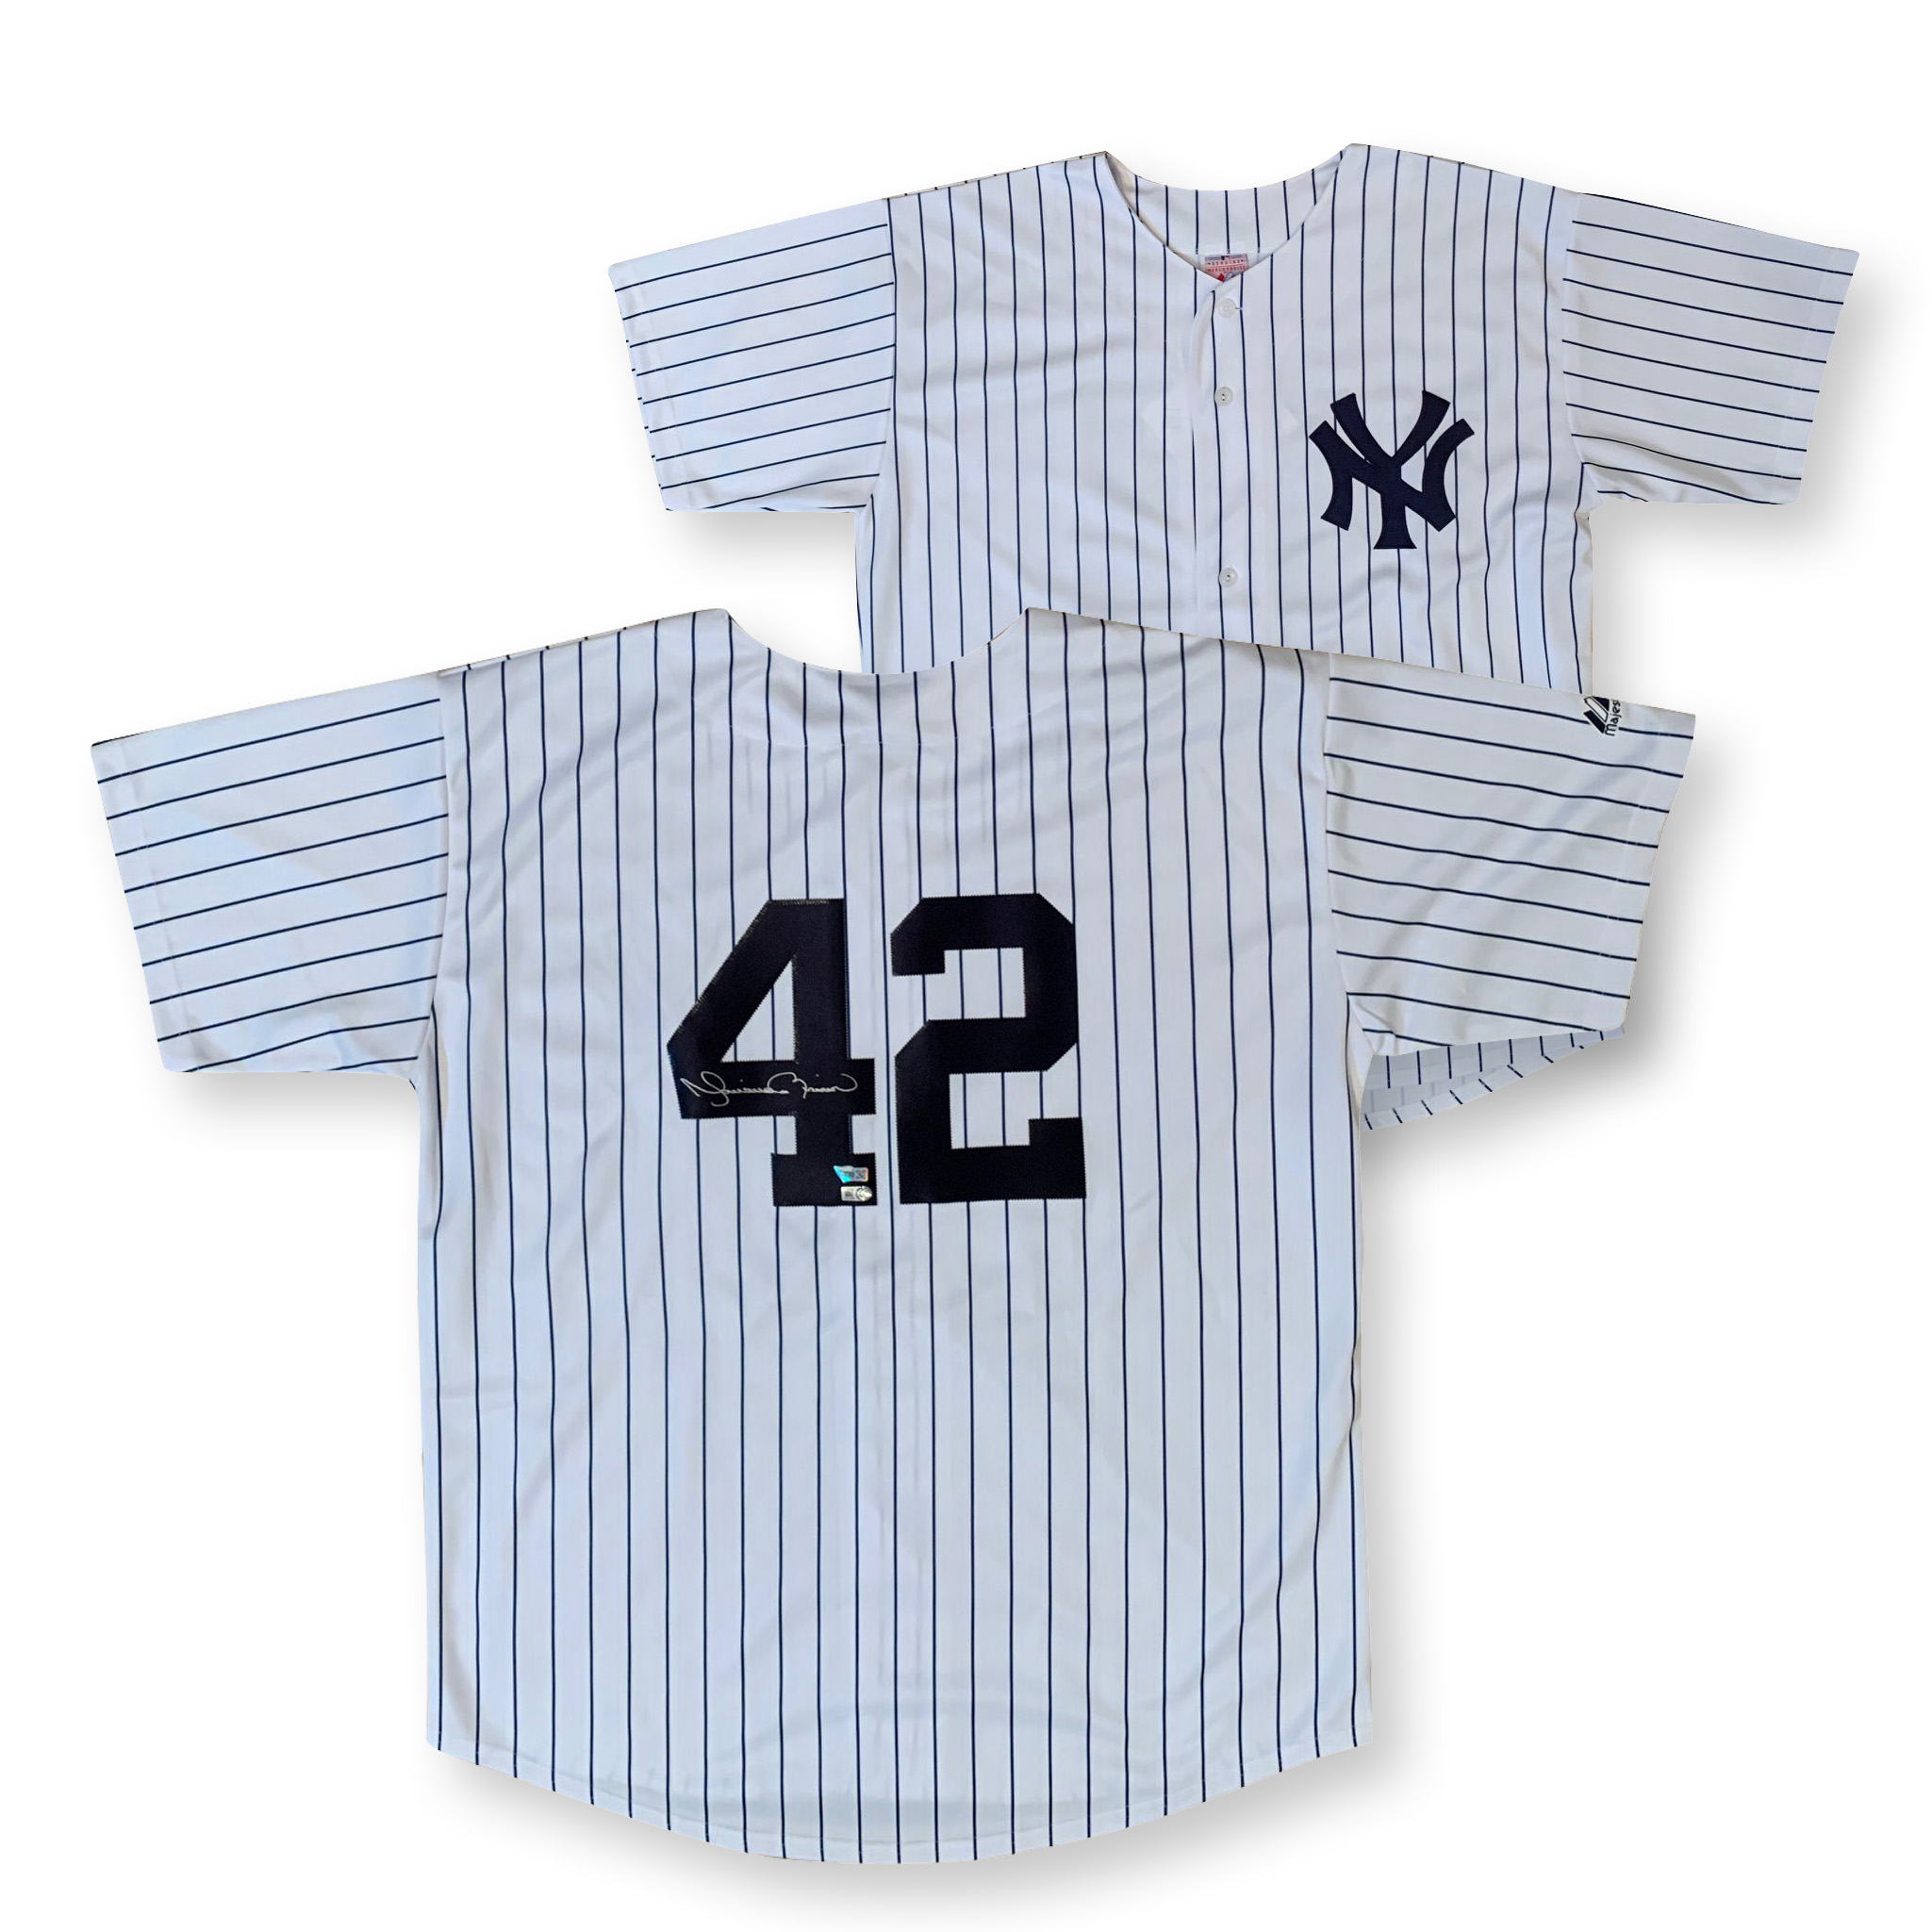 Mariano Rivera Autographed New York Yankees Signed Baseball Jersey Fanatics Authentic MLB COA Yankees Hall of Famer Mariano Rivera has autographed this officially licensed Yankees replica jersey.  Size XL, name and numbers sewn on.  Autograph is authenticated by Major League Baseball and Fanatics Authentic who has him as their exclusive memorabilia client. Item comes with their unique hologram # on the item that is verified on their website. 100% authentic.